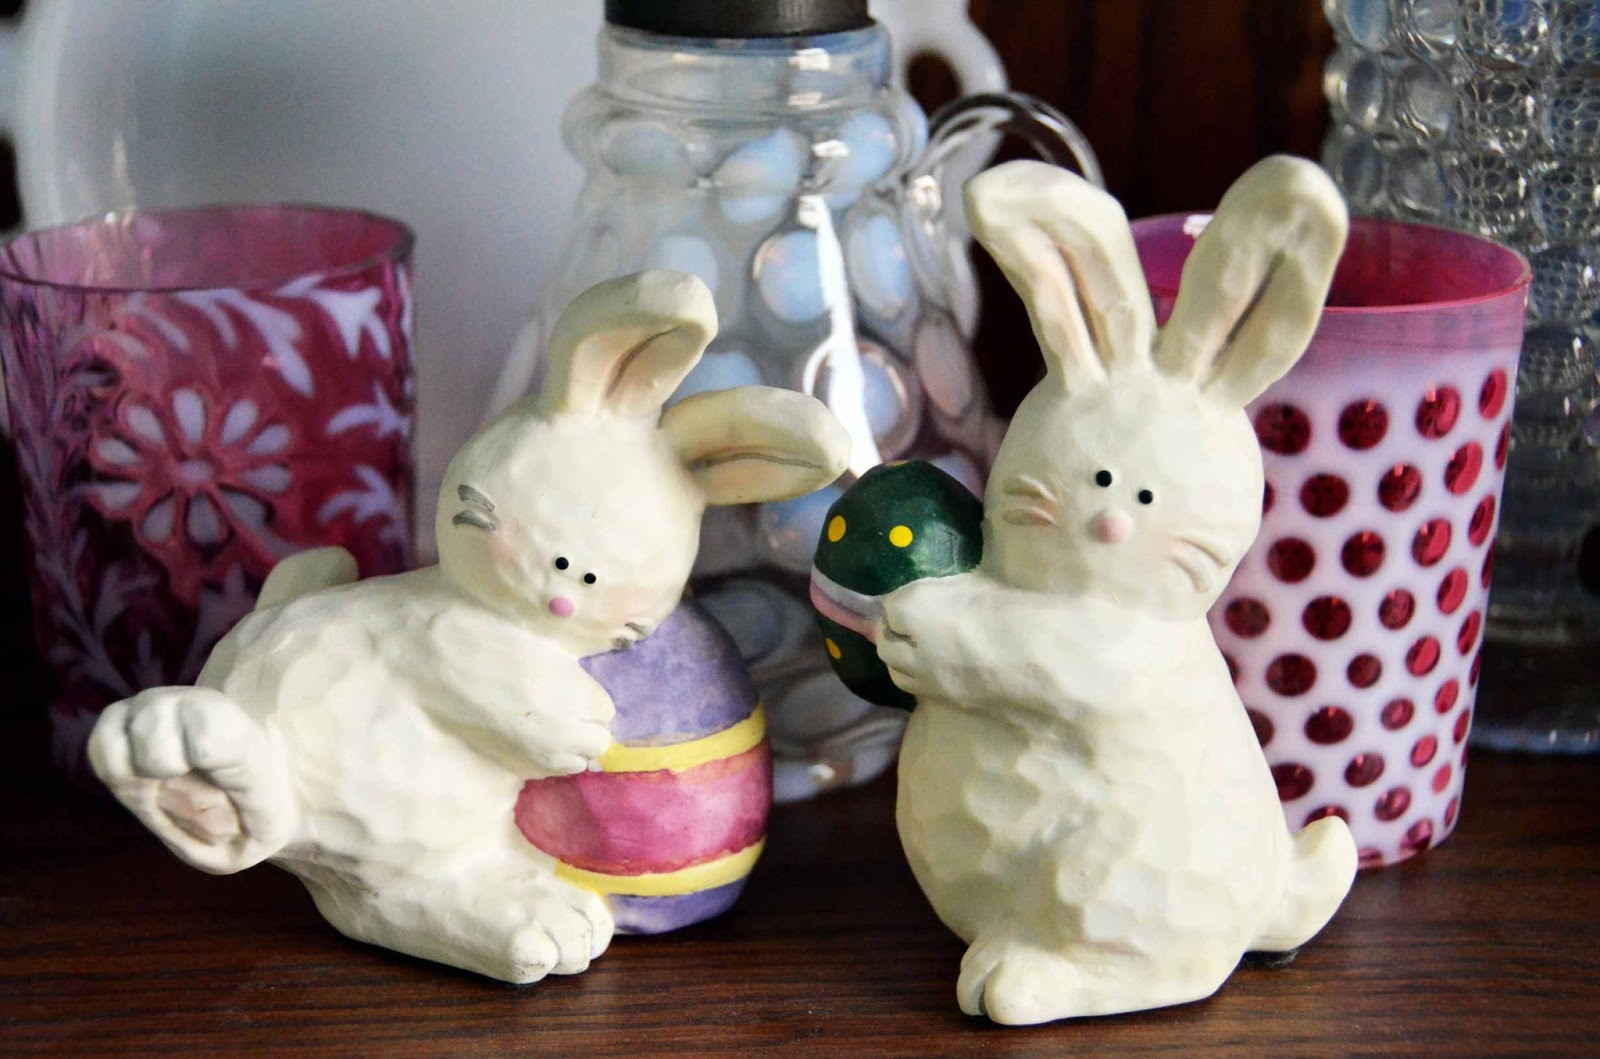 Easter Bunny vignette sculpture